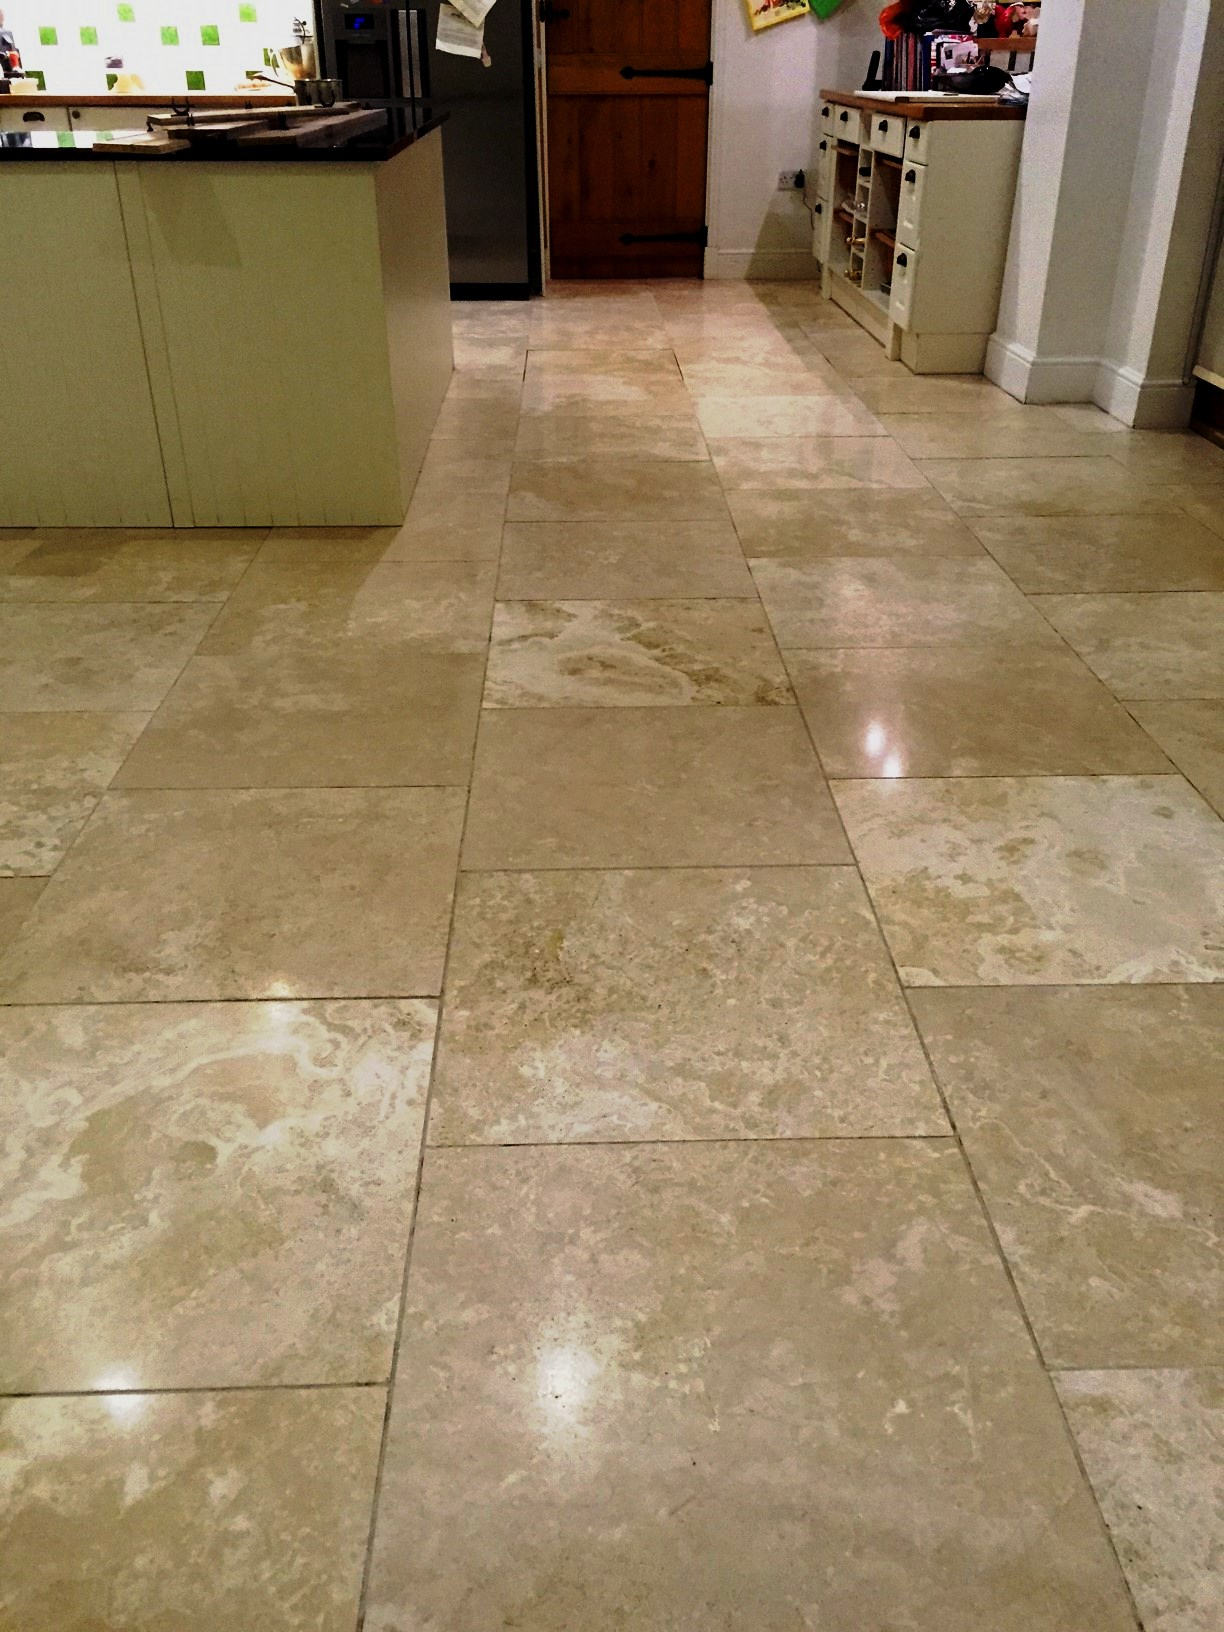 Tile maintenance stone cleaning and polishing tips for for Tiling kitchen floor